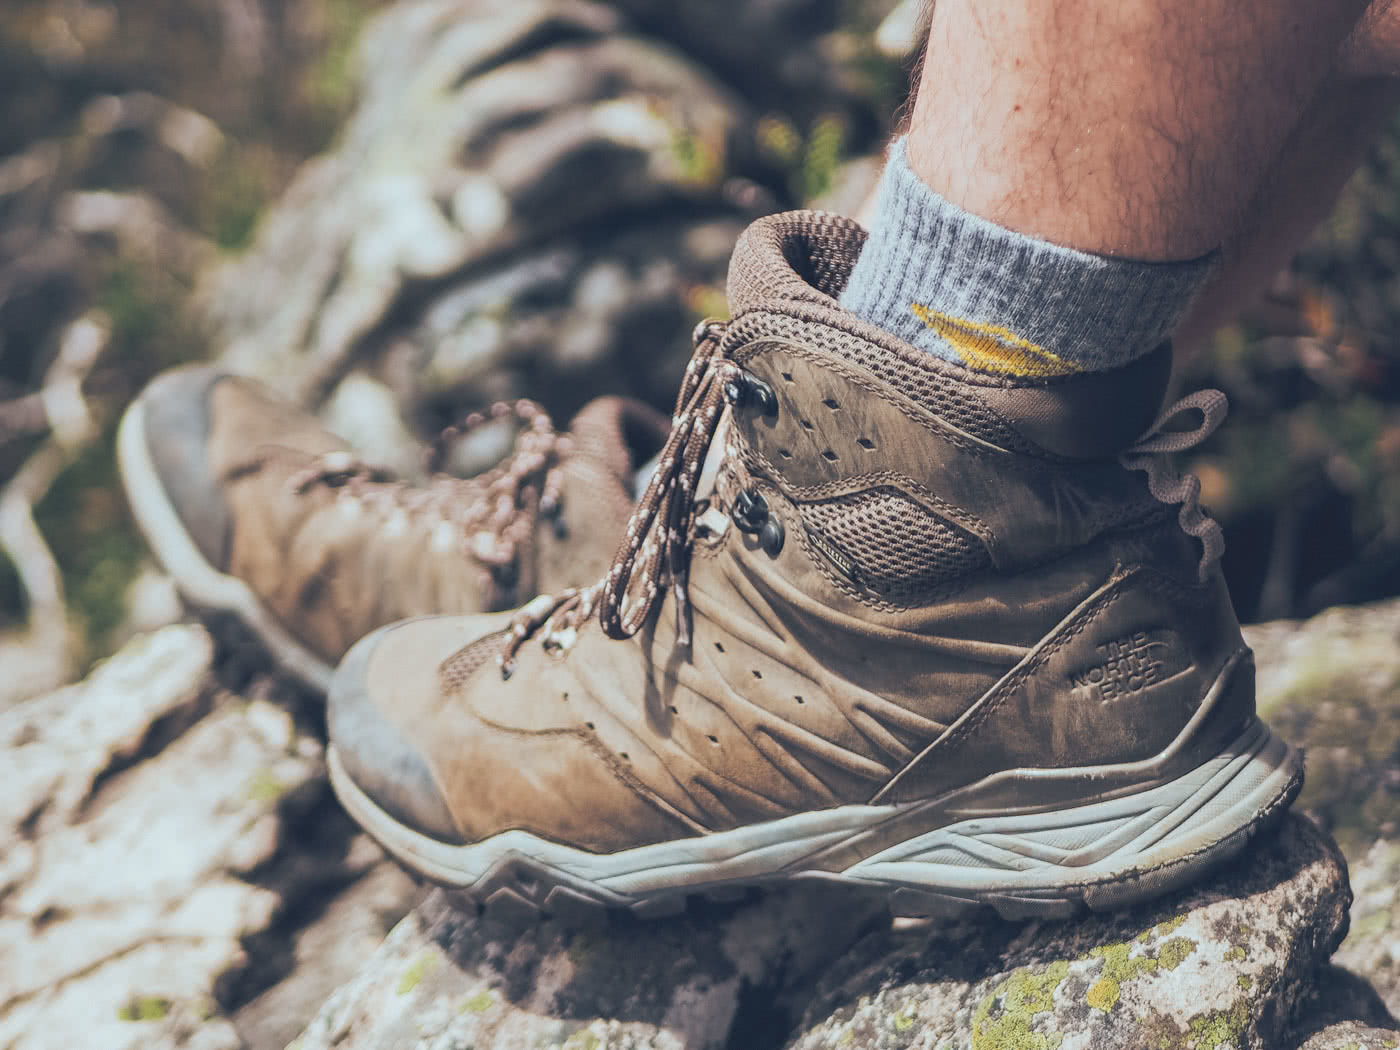 593c7e9ac89 The North Face Hedgehog Hike II GTX // Gear Review - We Are Explorers